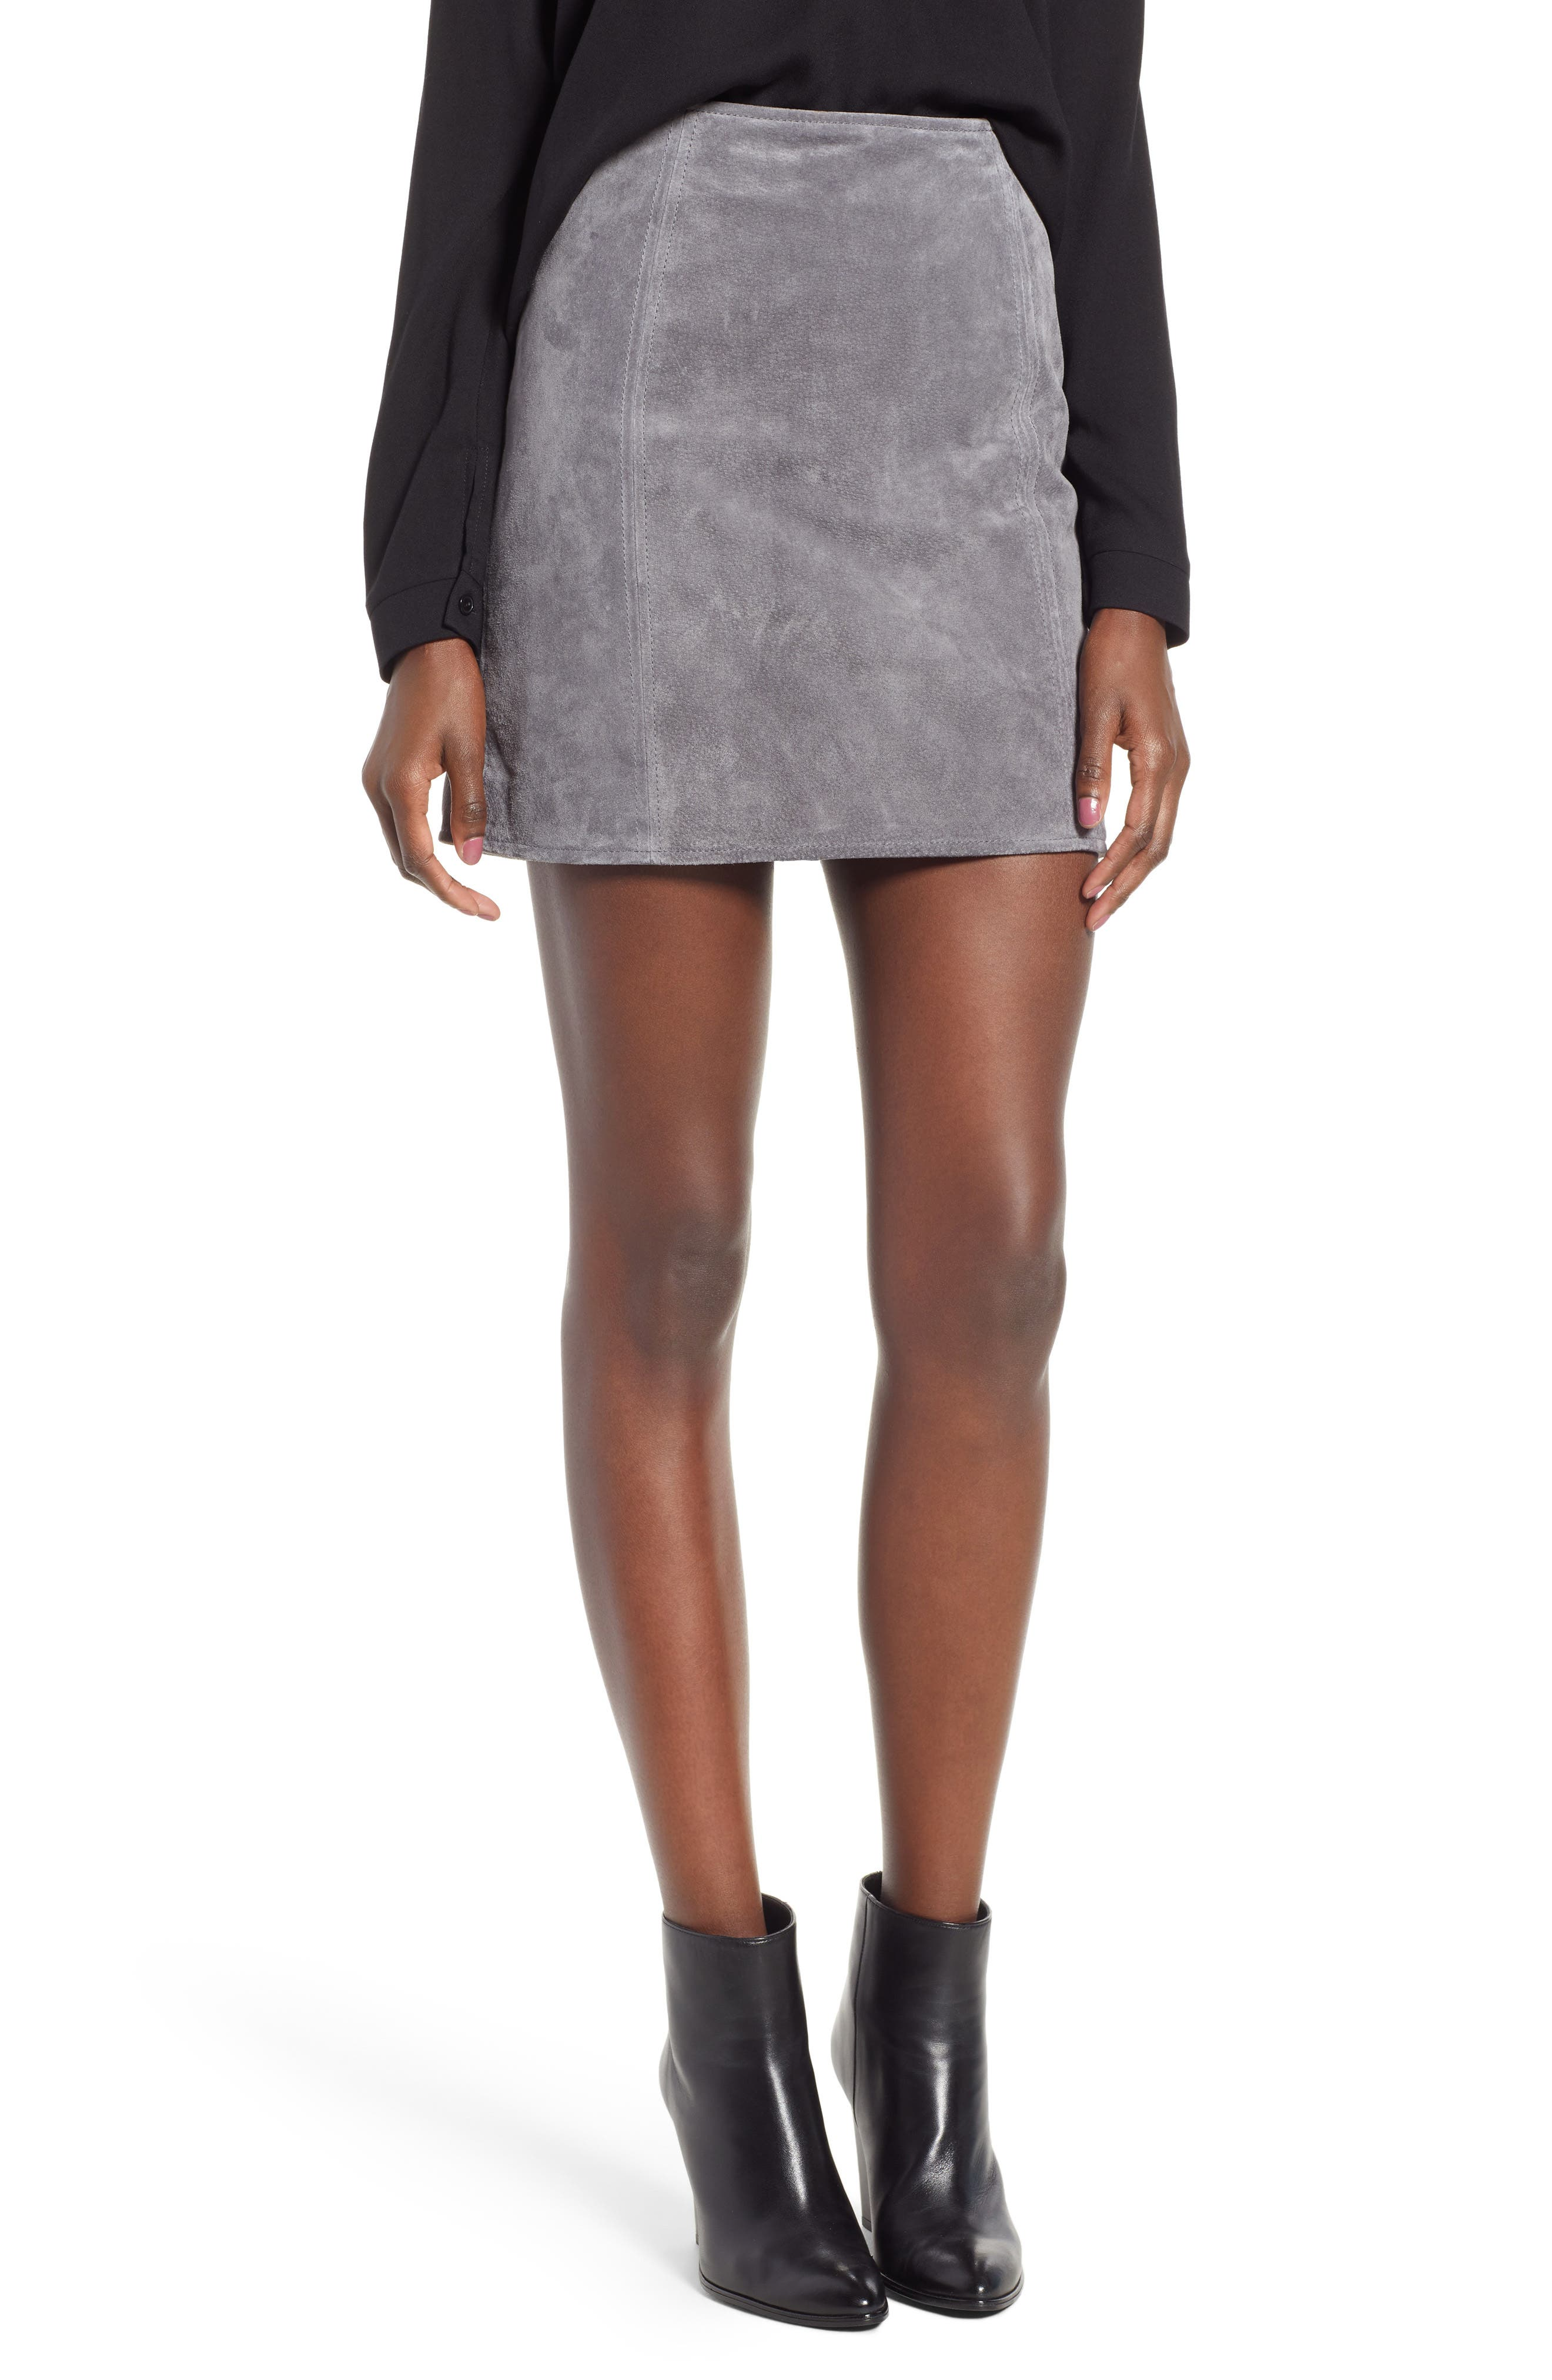 BLANKNYC, A-Line Suede Skirt, Main thumbnail 1, color, 020